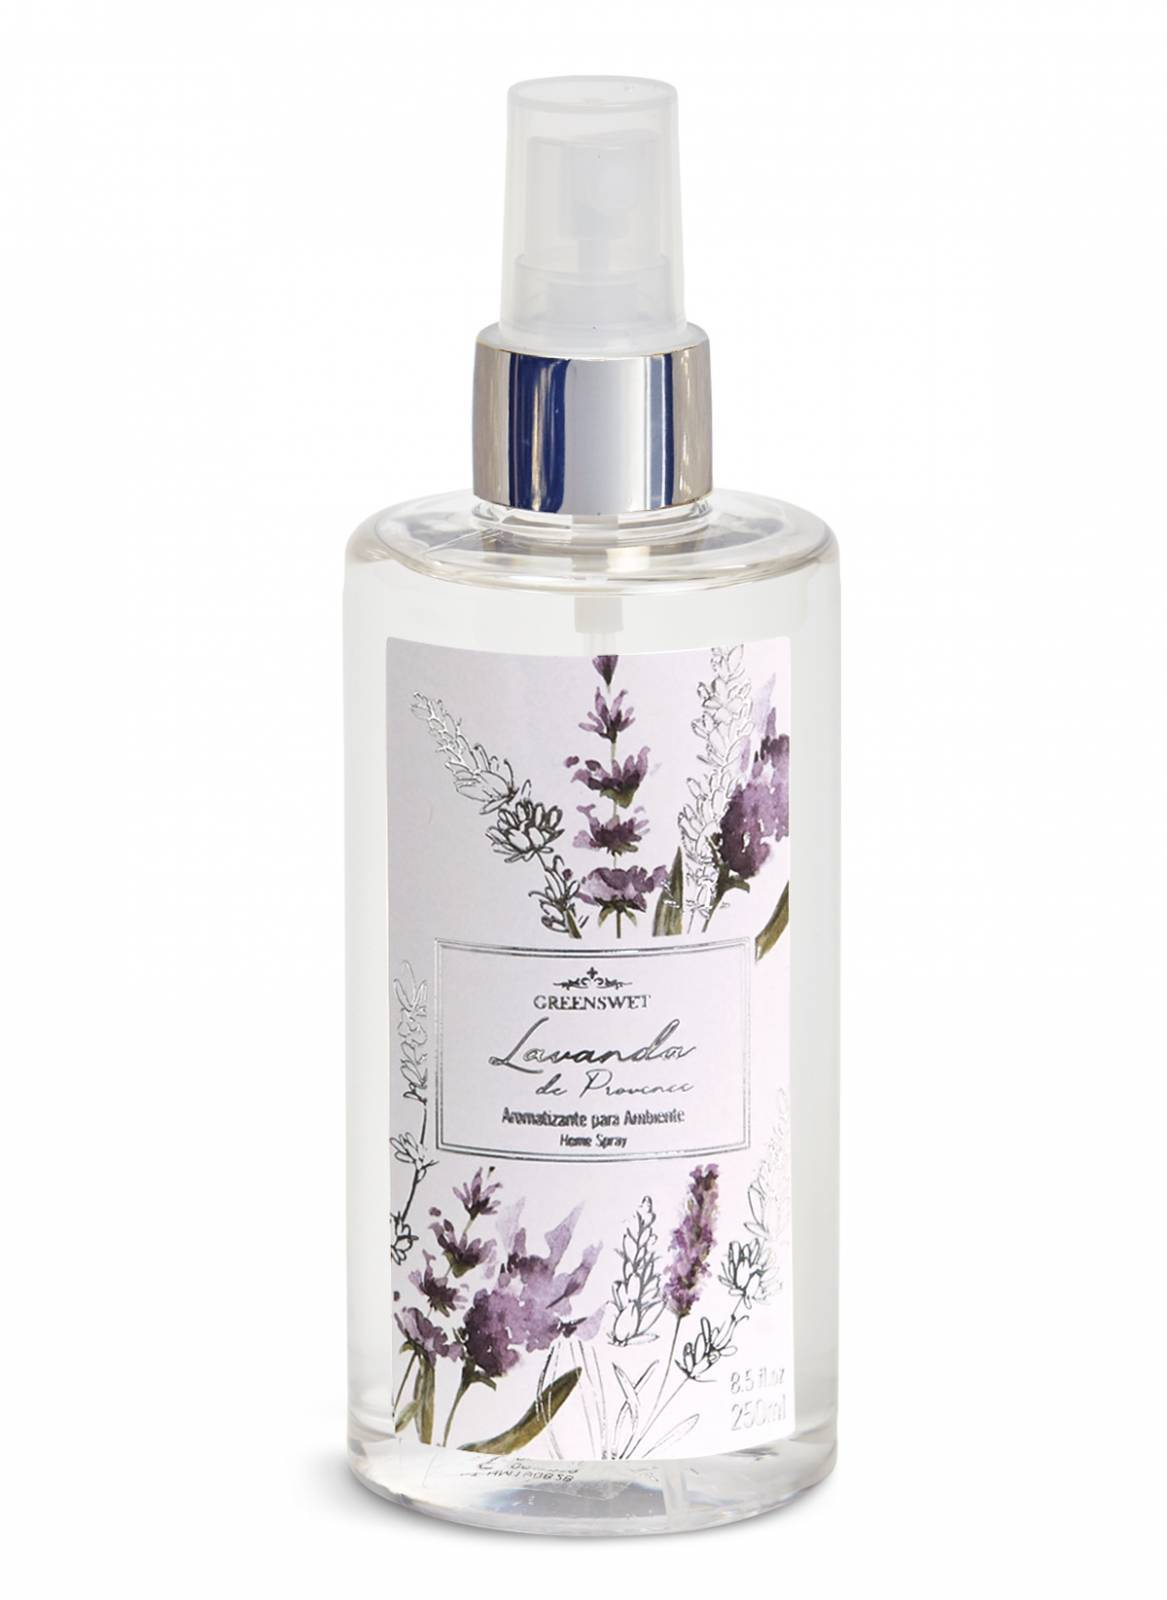 Home Spray 250ml Essência Lavanda - Greenswet Aromatizantes